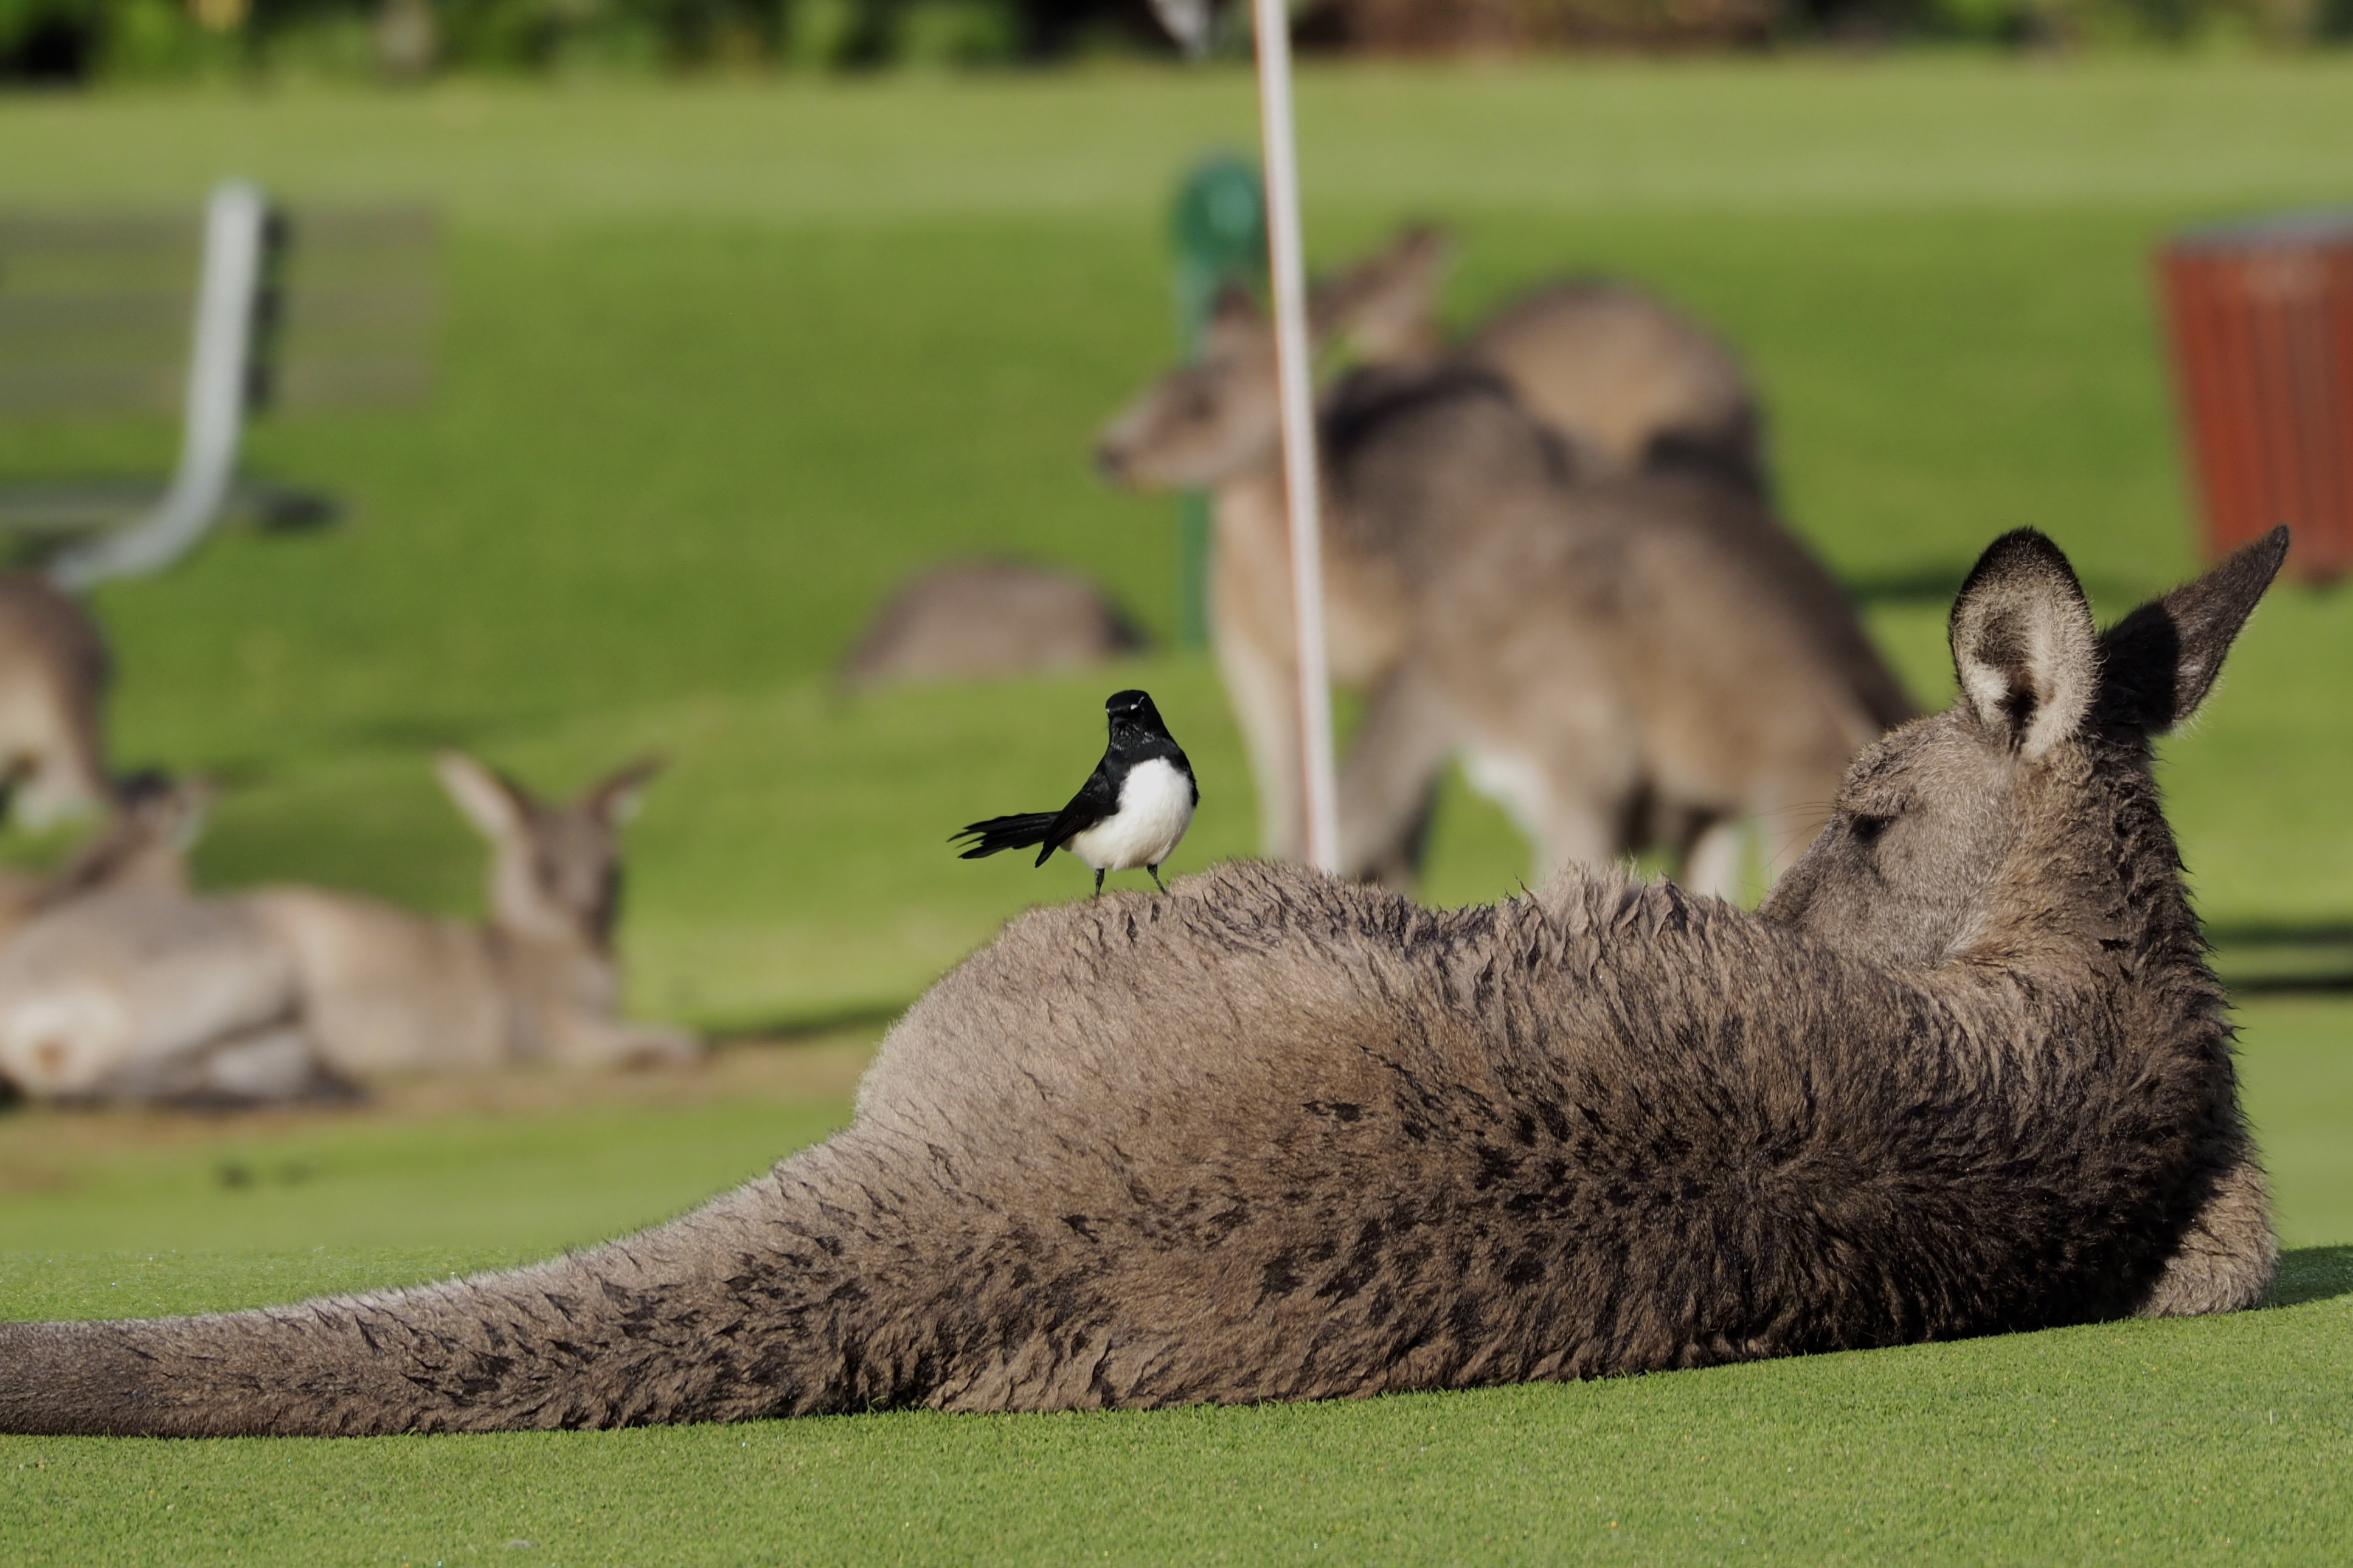 Locals on the 18th hole